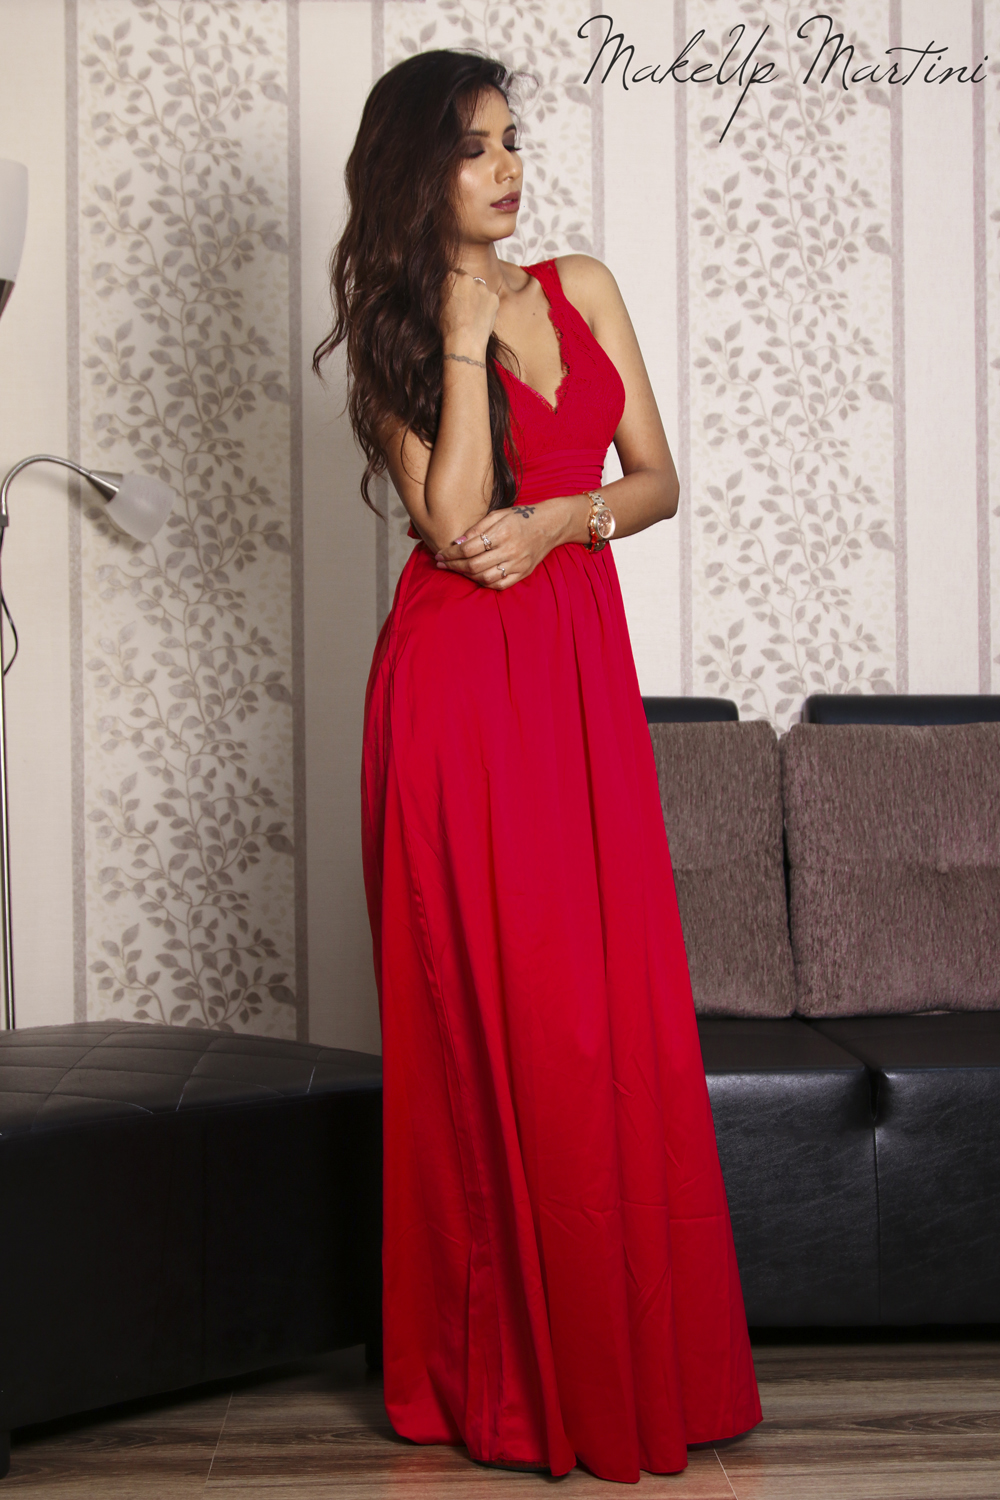 New Year Glam & Flirty Red Maxi Dress